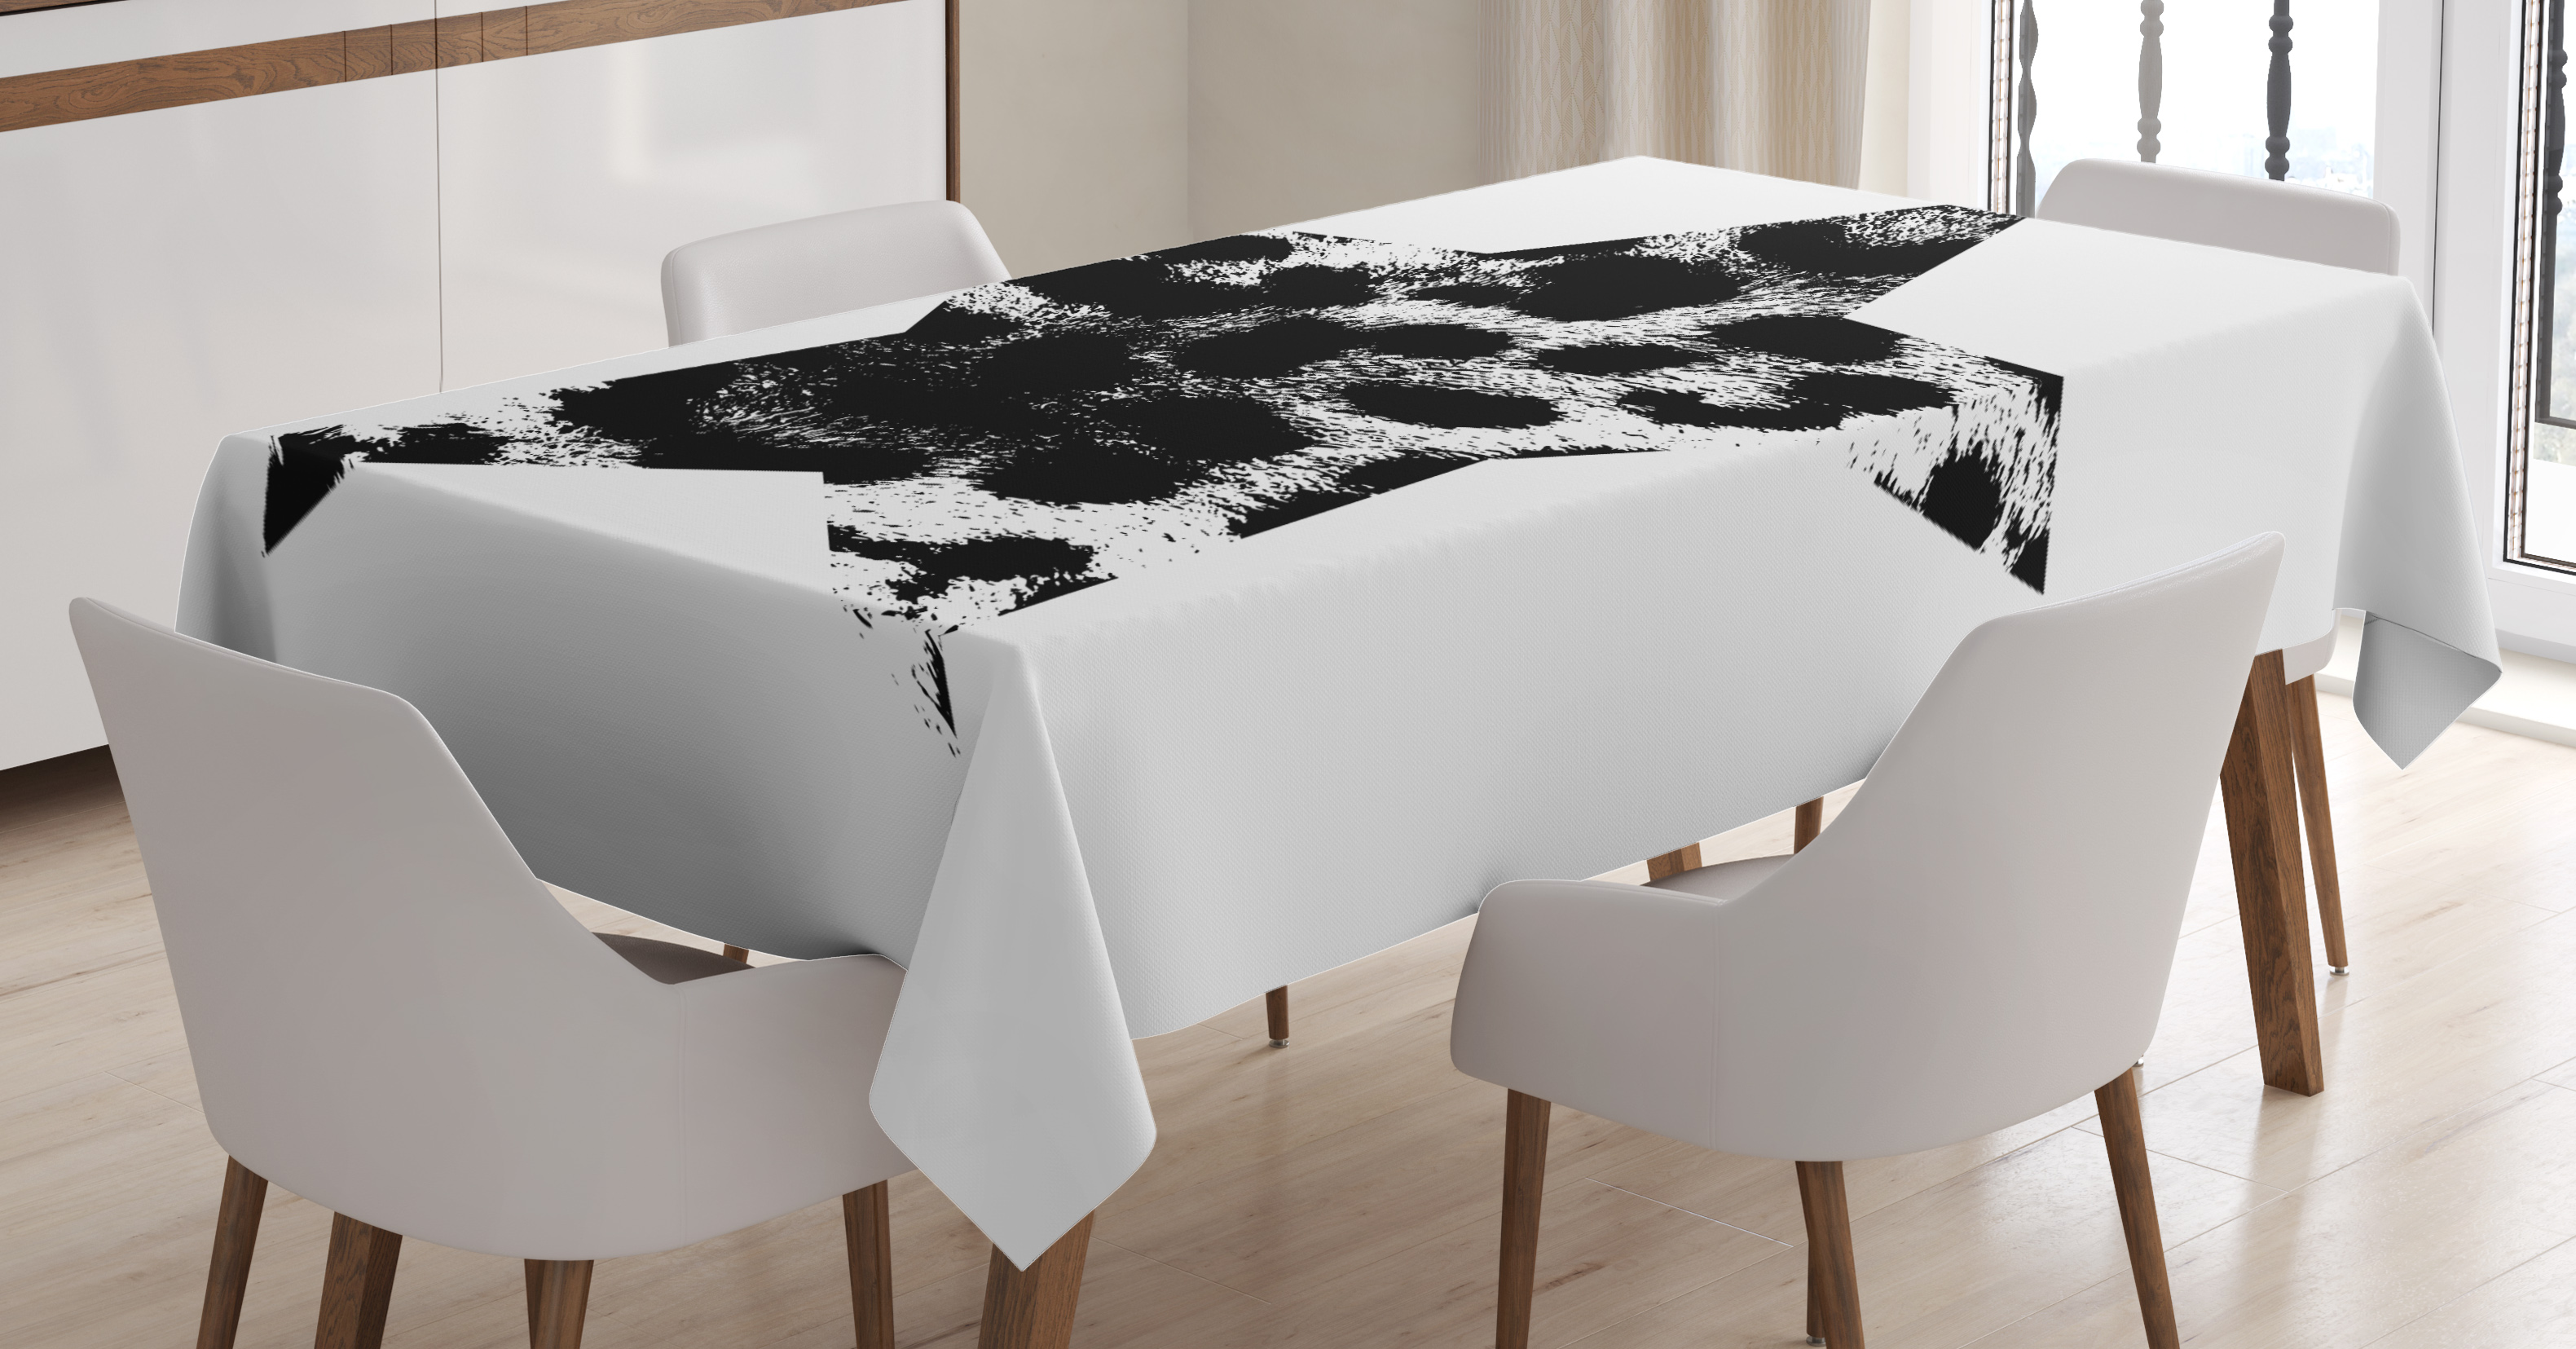 225 & Leopard Print Table Covers - Best Image of Leopard 2018